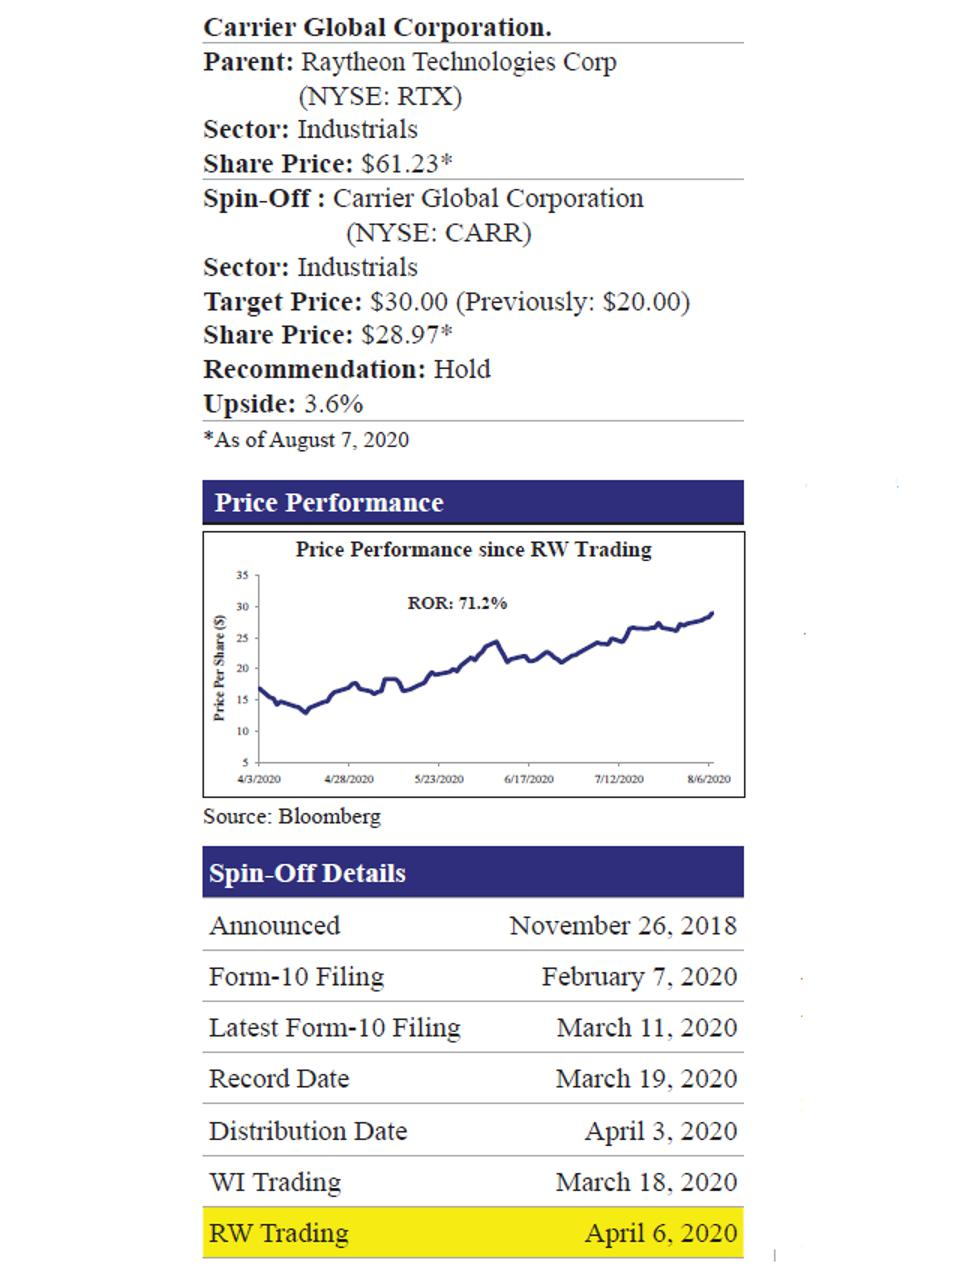 Carrier Global Corp. Price Performance and Spin-Off Details